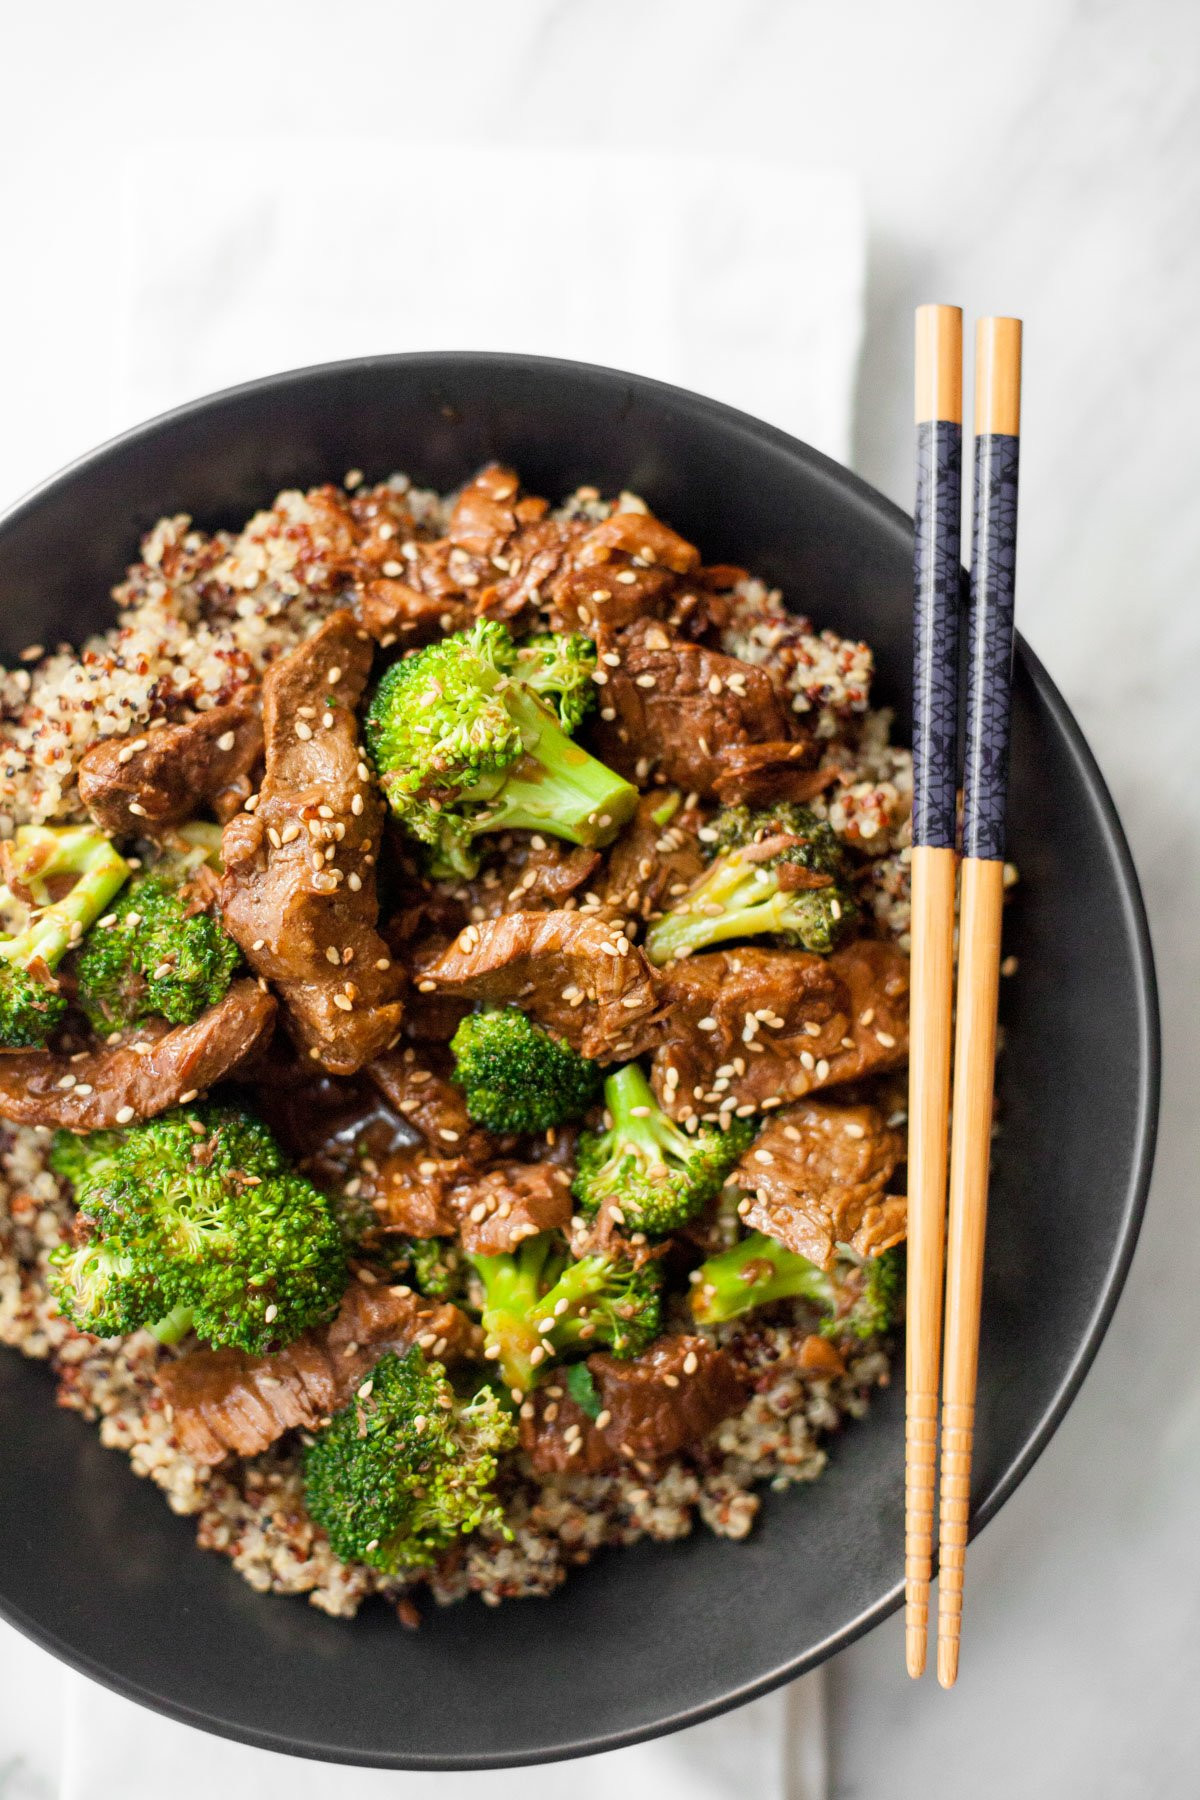 Beef And Broccoli Slow Cooker  Slow Cooker Beef and Broccoli with Quinoa